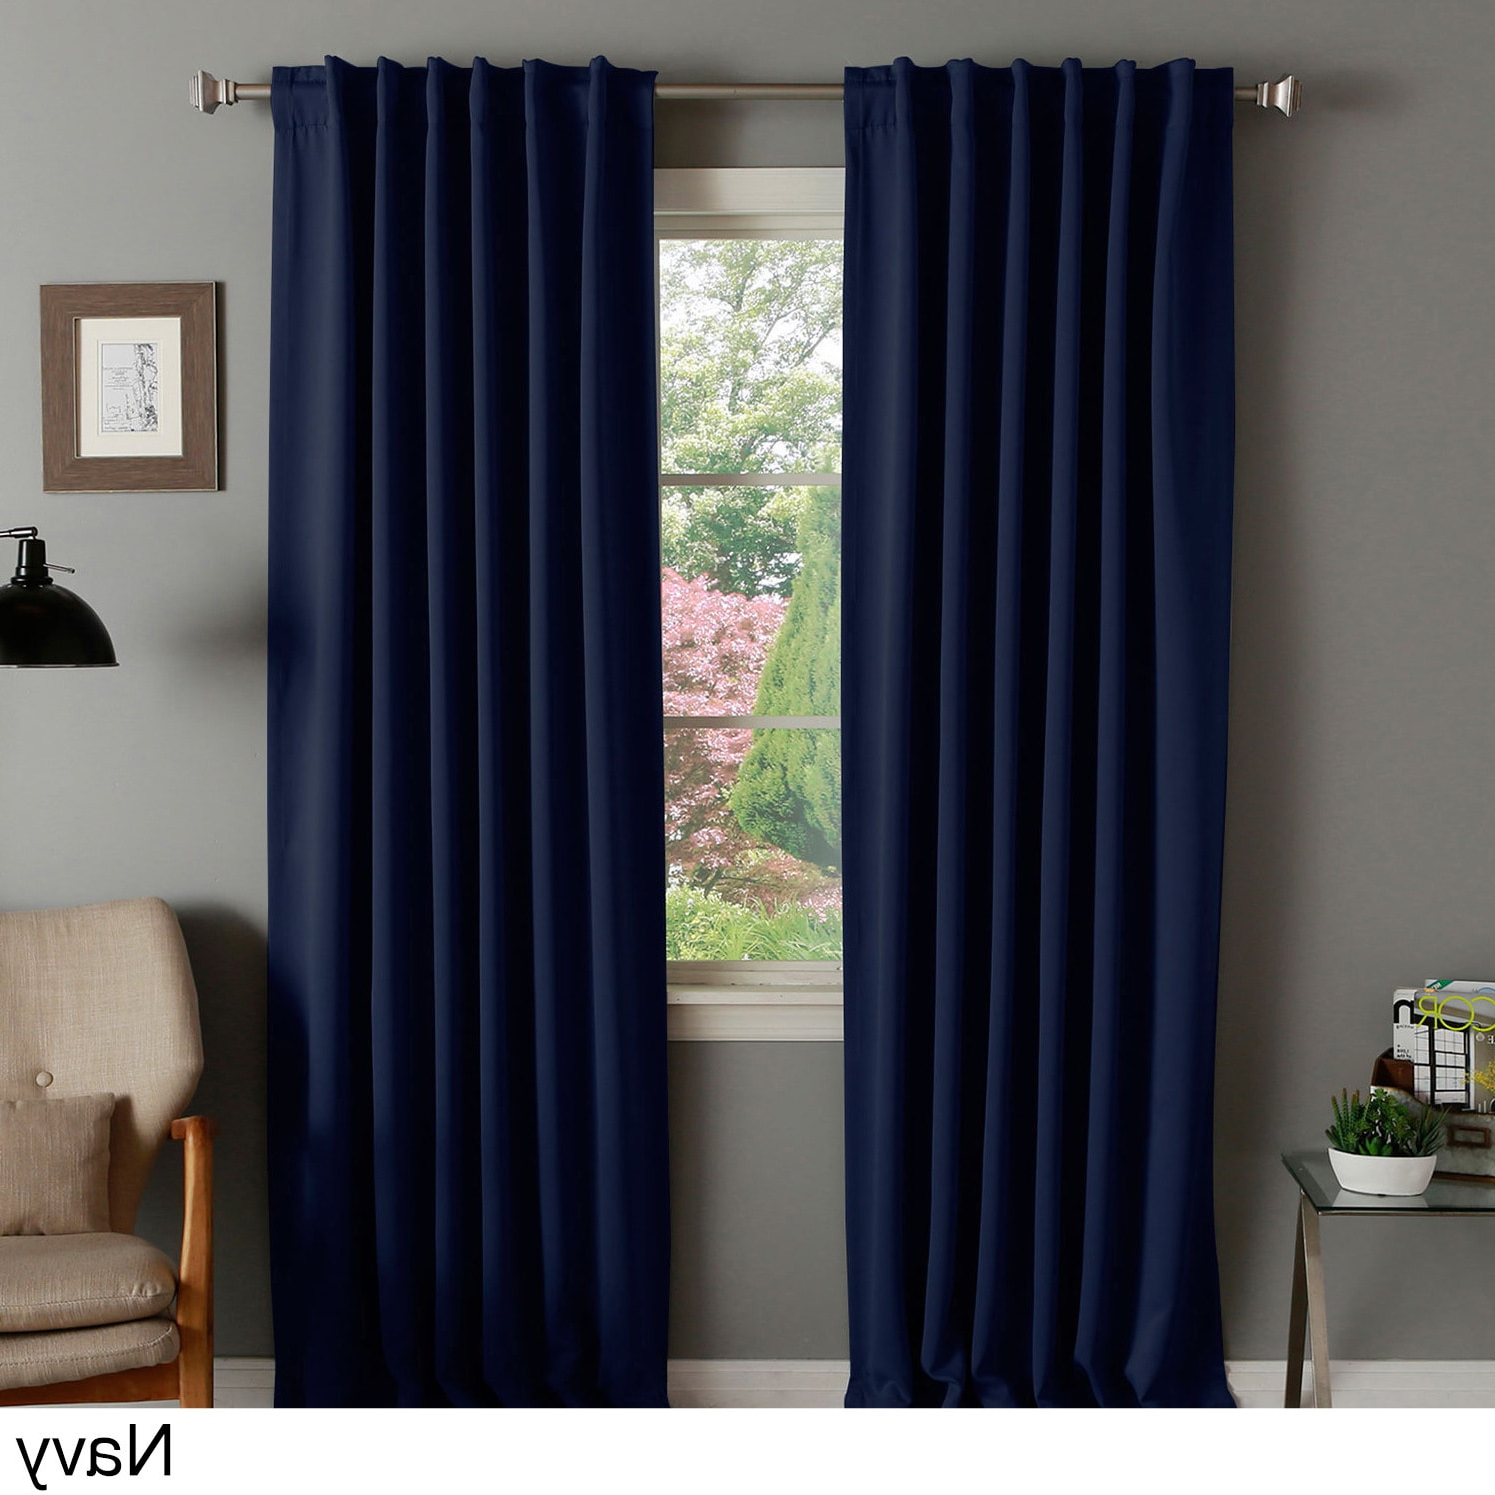 Aurora Home Thermal Rod Pocket 96 Inch Blackout Curtain Panel Pair In Well Liked Thermal Rod Pocket Blackout Curtain Panel Pairs (View 3 of 20)